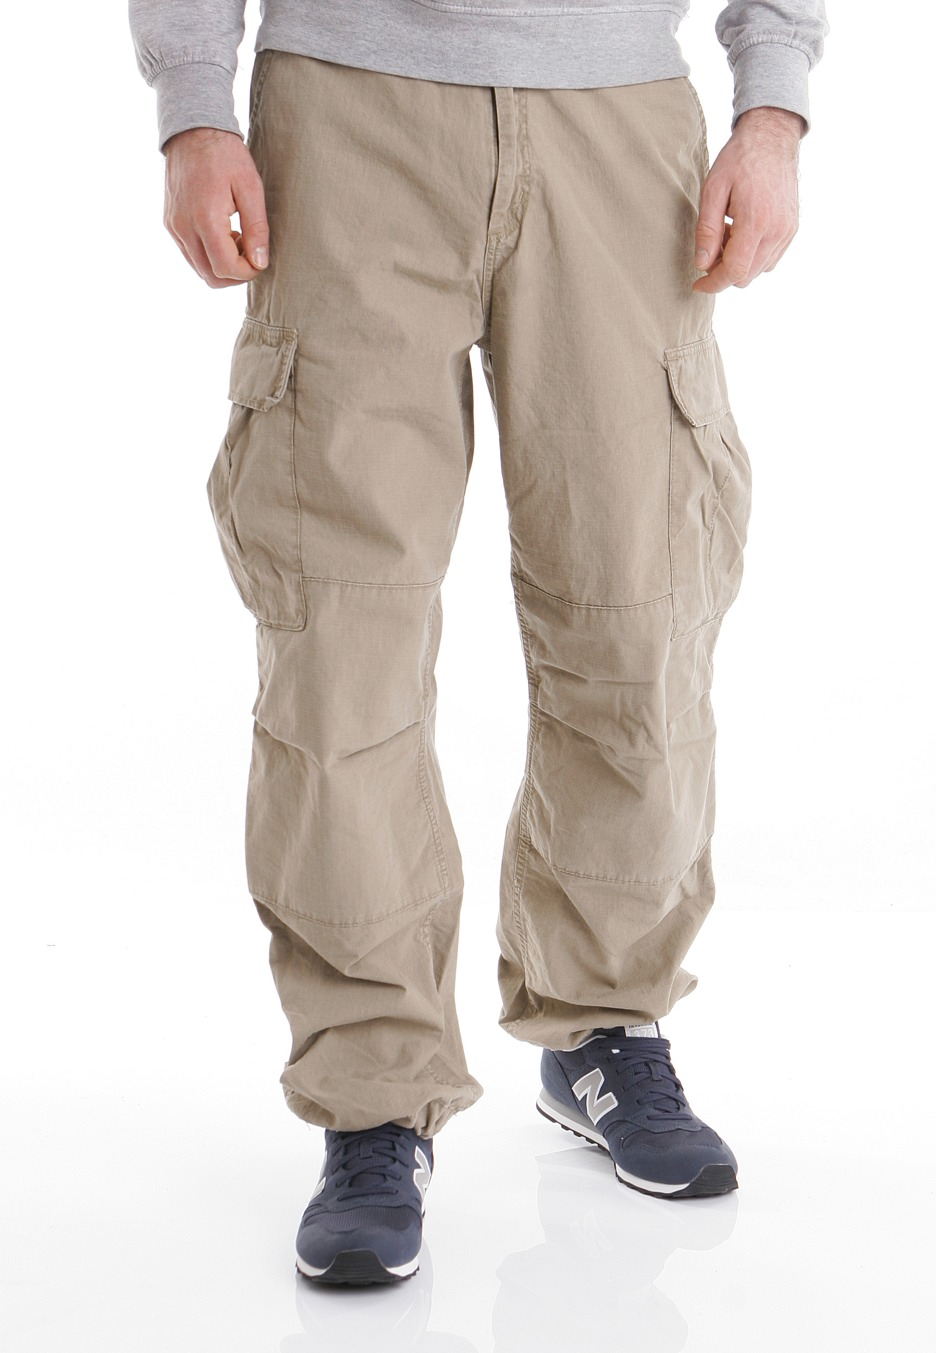 Carhartt WIP - Cargo Columbia Leather Stone Washed - Pants - Streetwear  Shop - Impericon.com US 8ad9cdabc